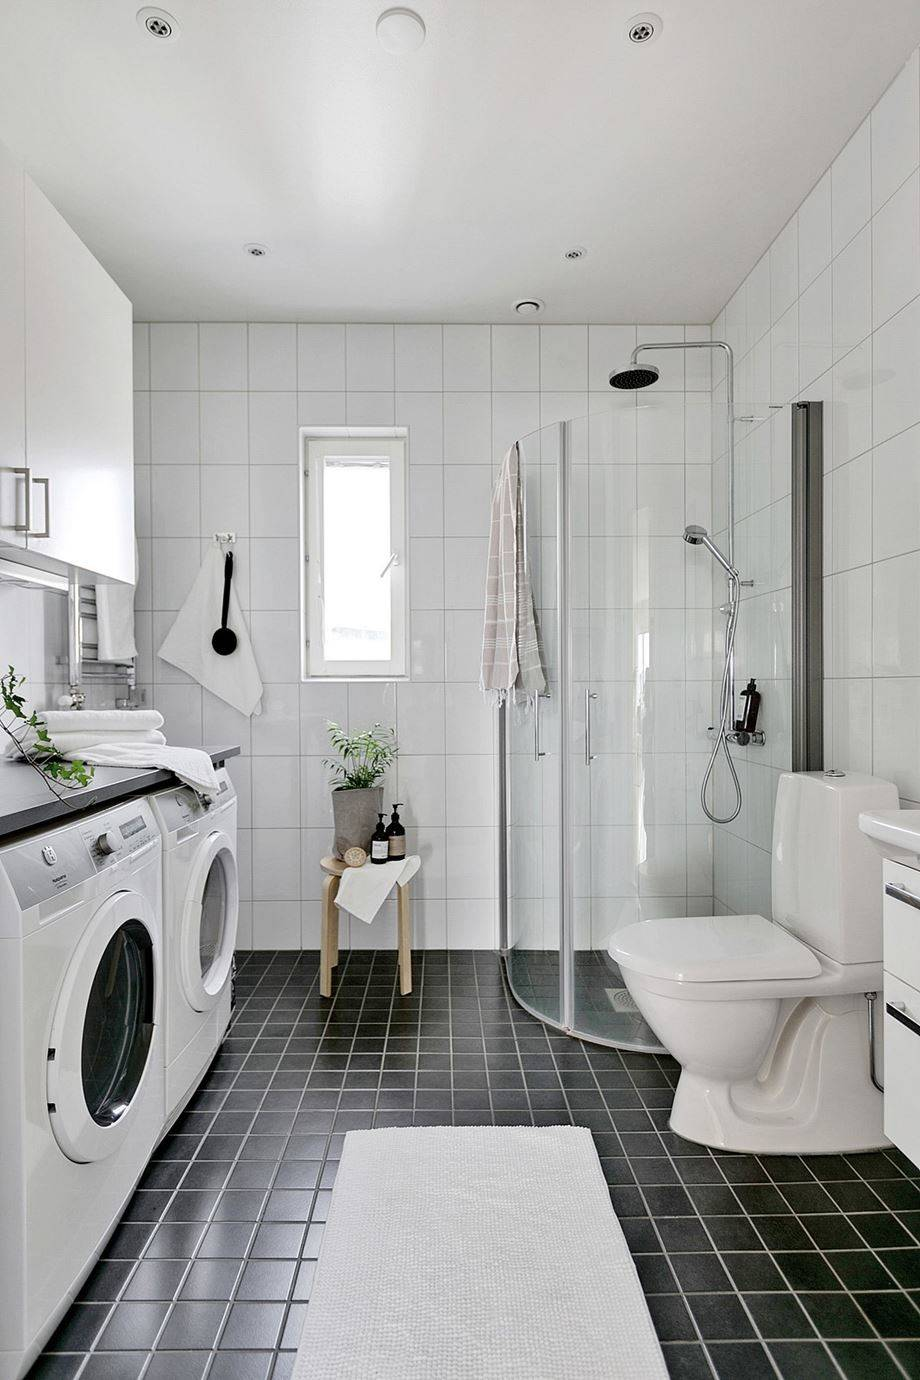 75 Beautiful Bathroom Laundry Room Pictures Ideas December 2020 Houzz